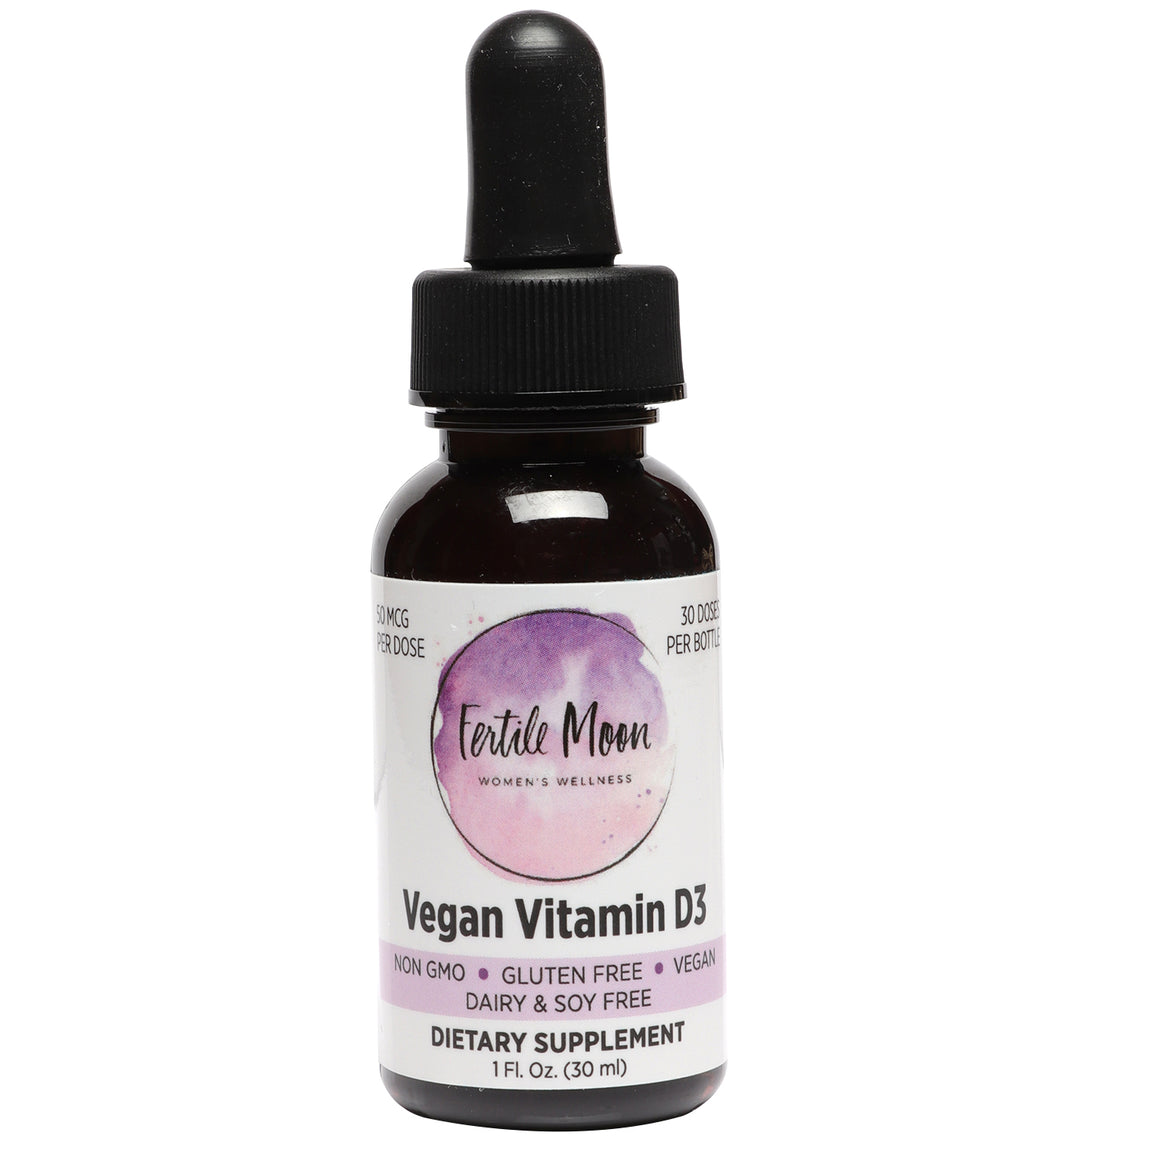 Liquid Vitamin D3 Vegan 50 mcg (2000 IU) Per Dose by Fertile Moon® - Premium Plant-Based Vitamin D3 from Lichen - Non-GMO, No Gluten, Dairy, or Soy - 30 Doses per Bottle